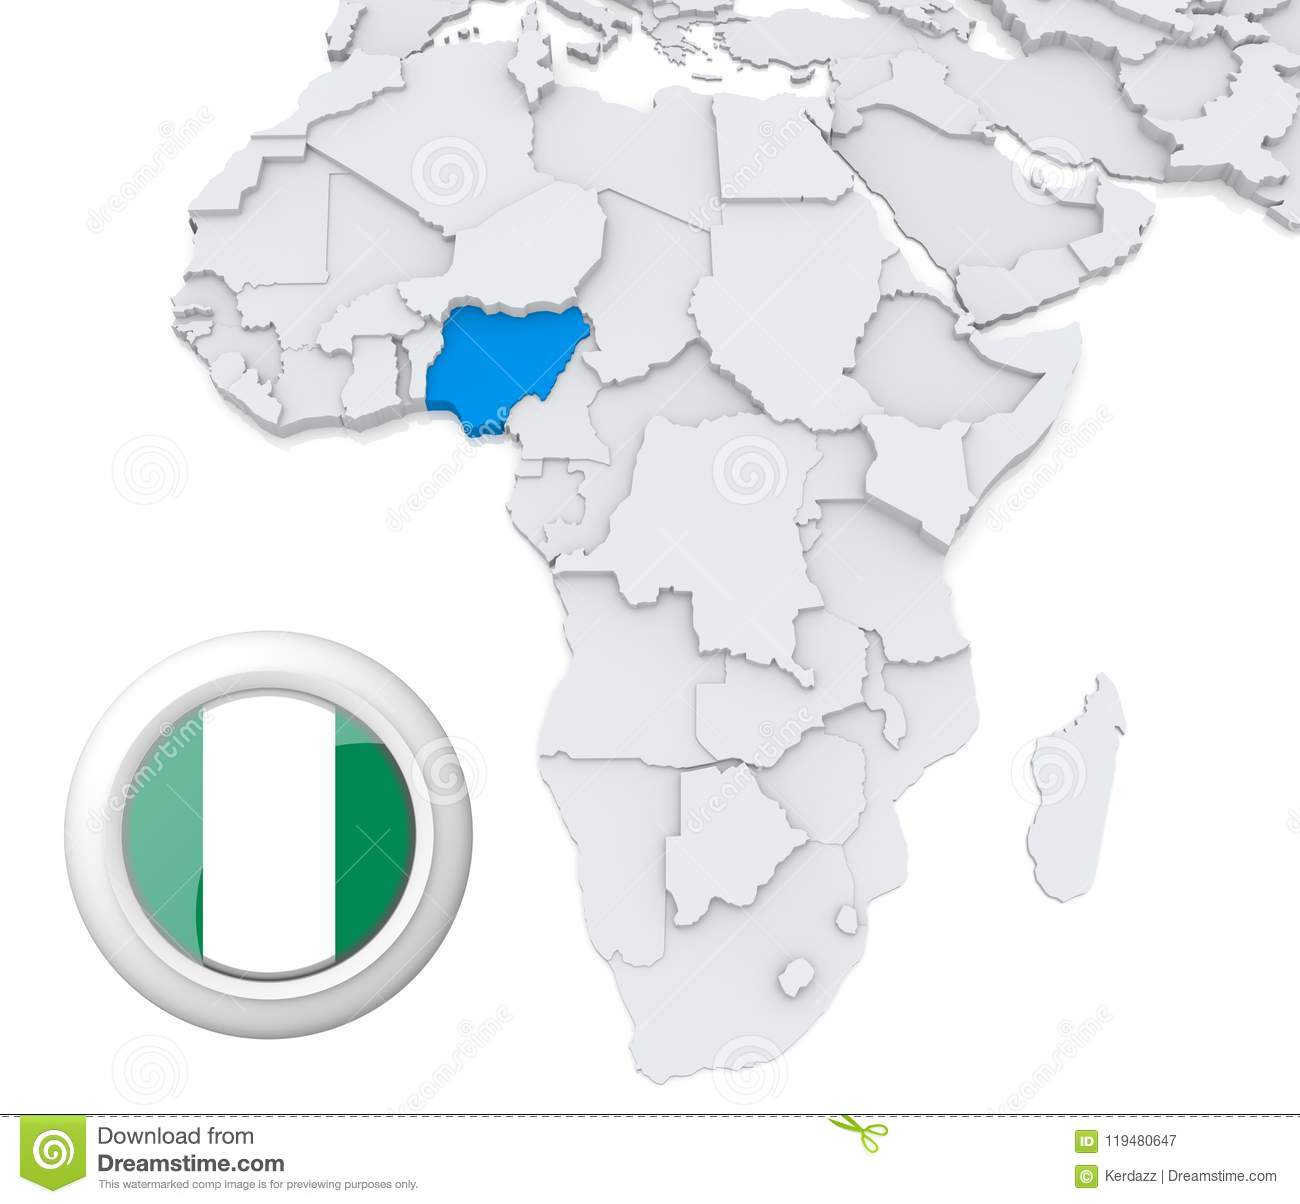 Africa Map Nigeria.Nigeria On Africa Map Stock Illustration Illustration Of School